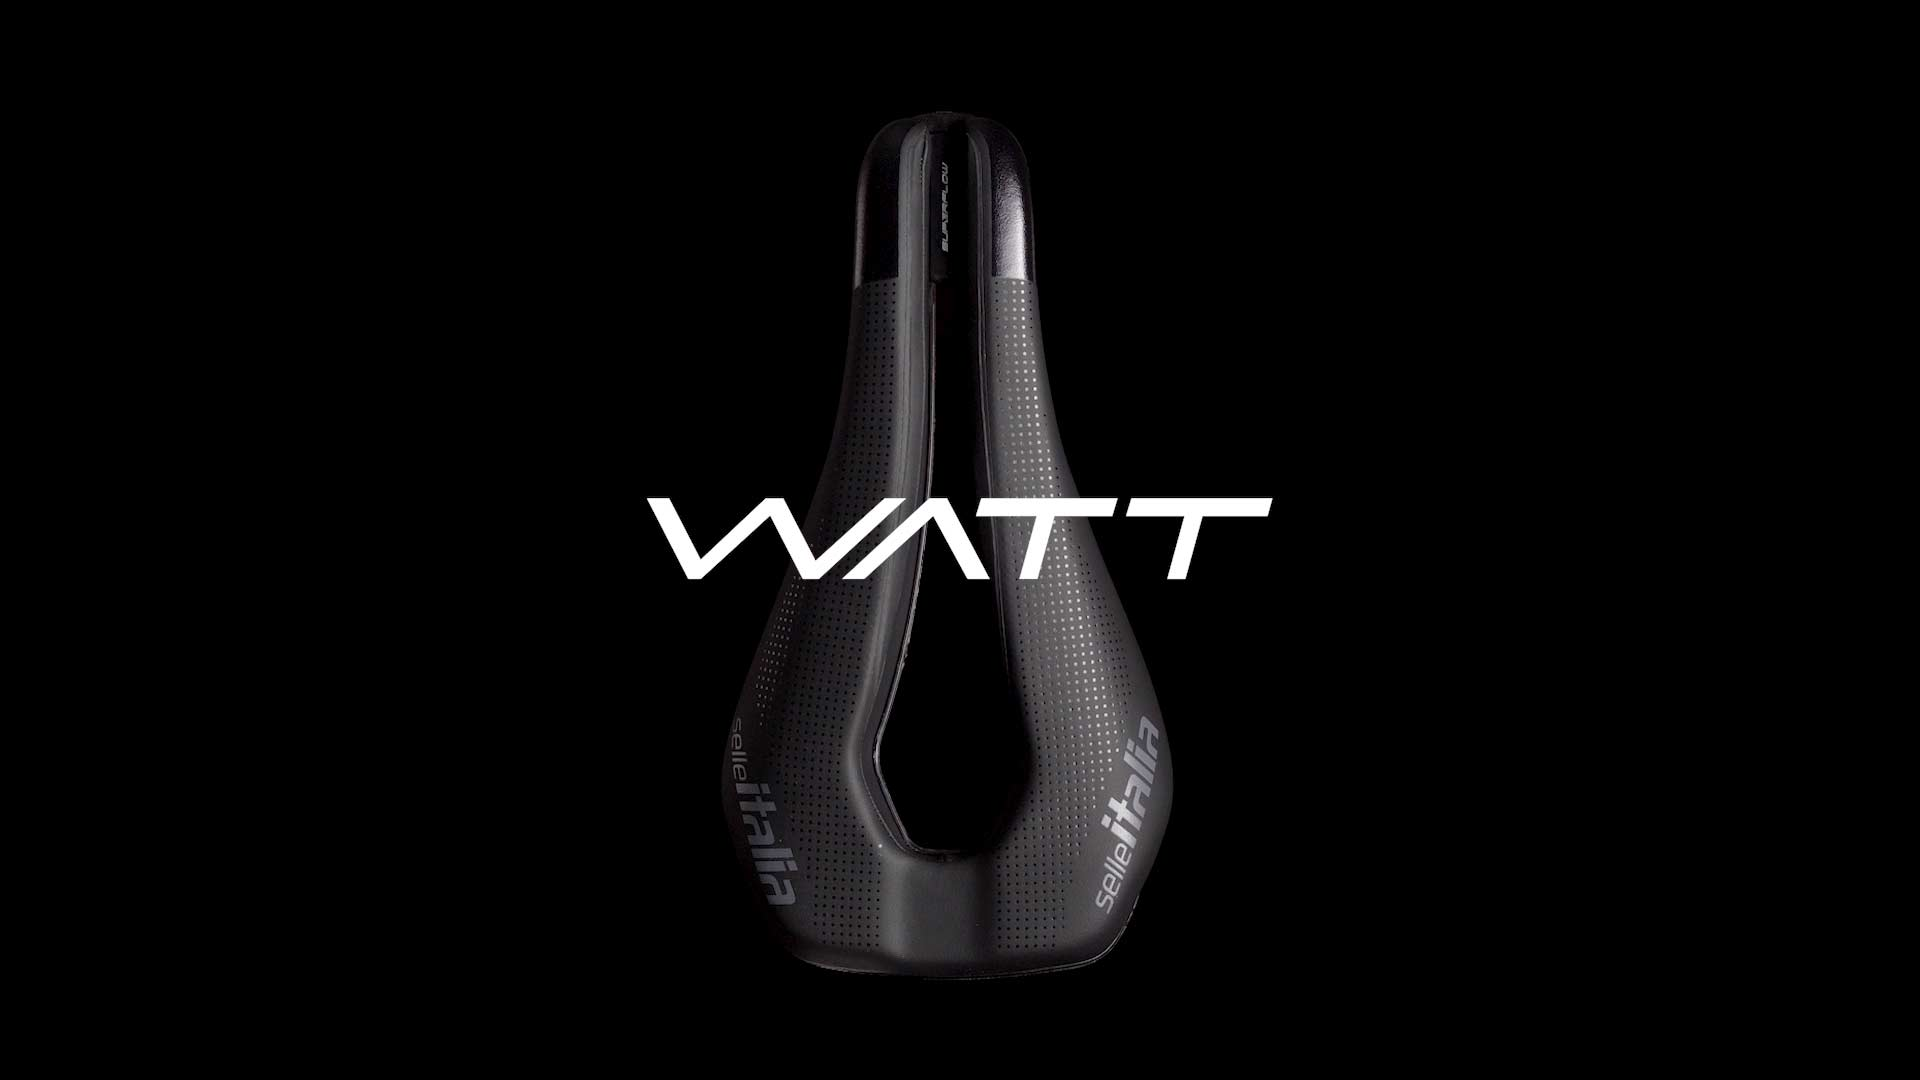 Details Make The Difference watt: comfort and efficieny to improve your performance